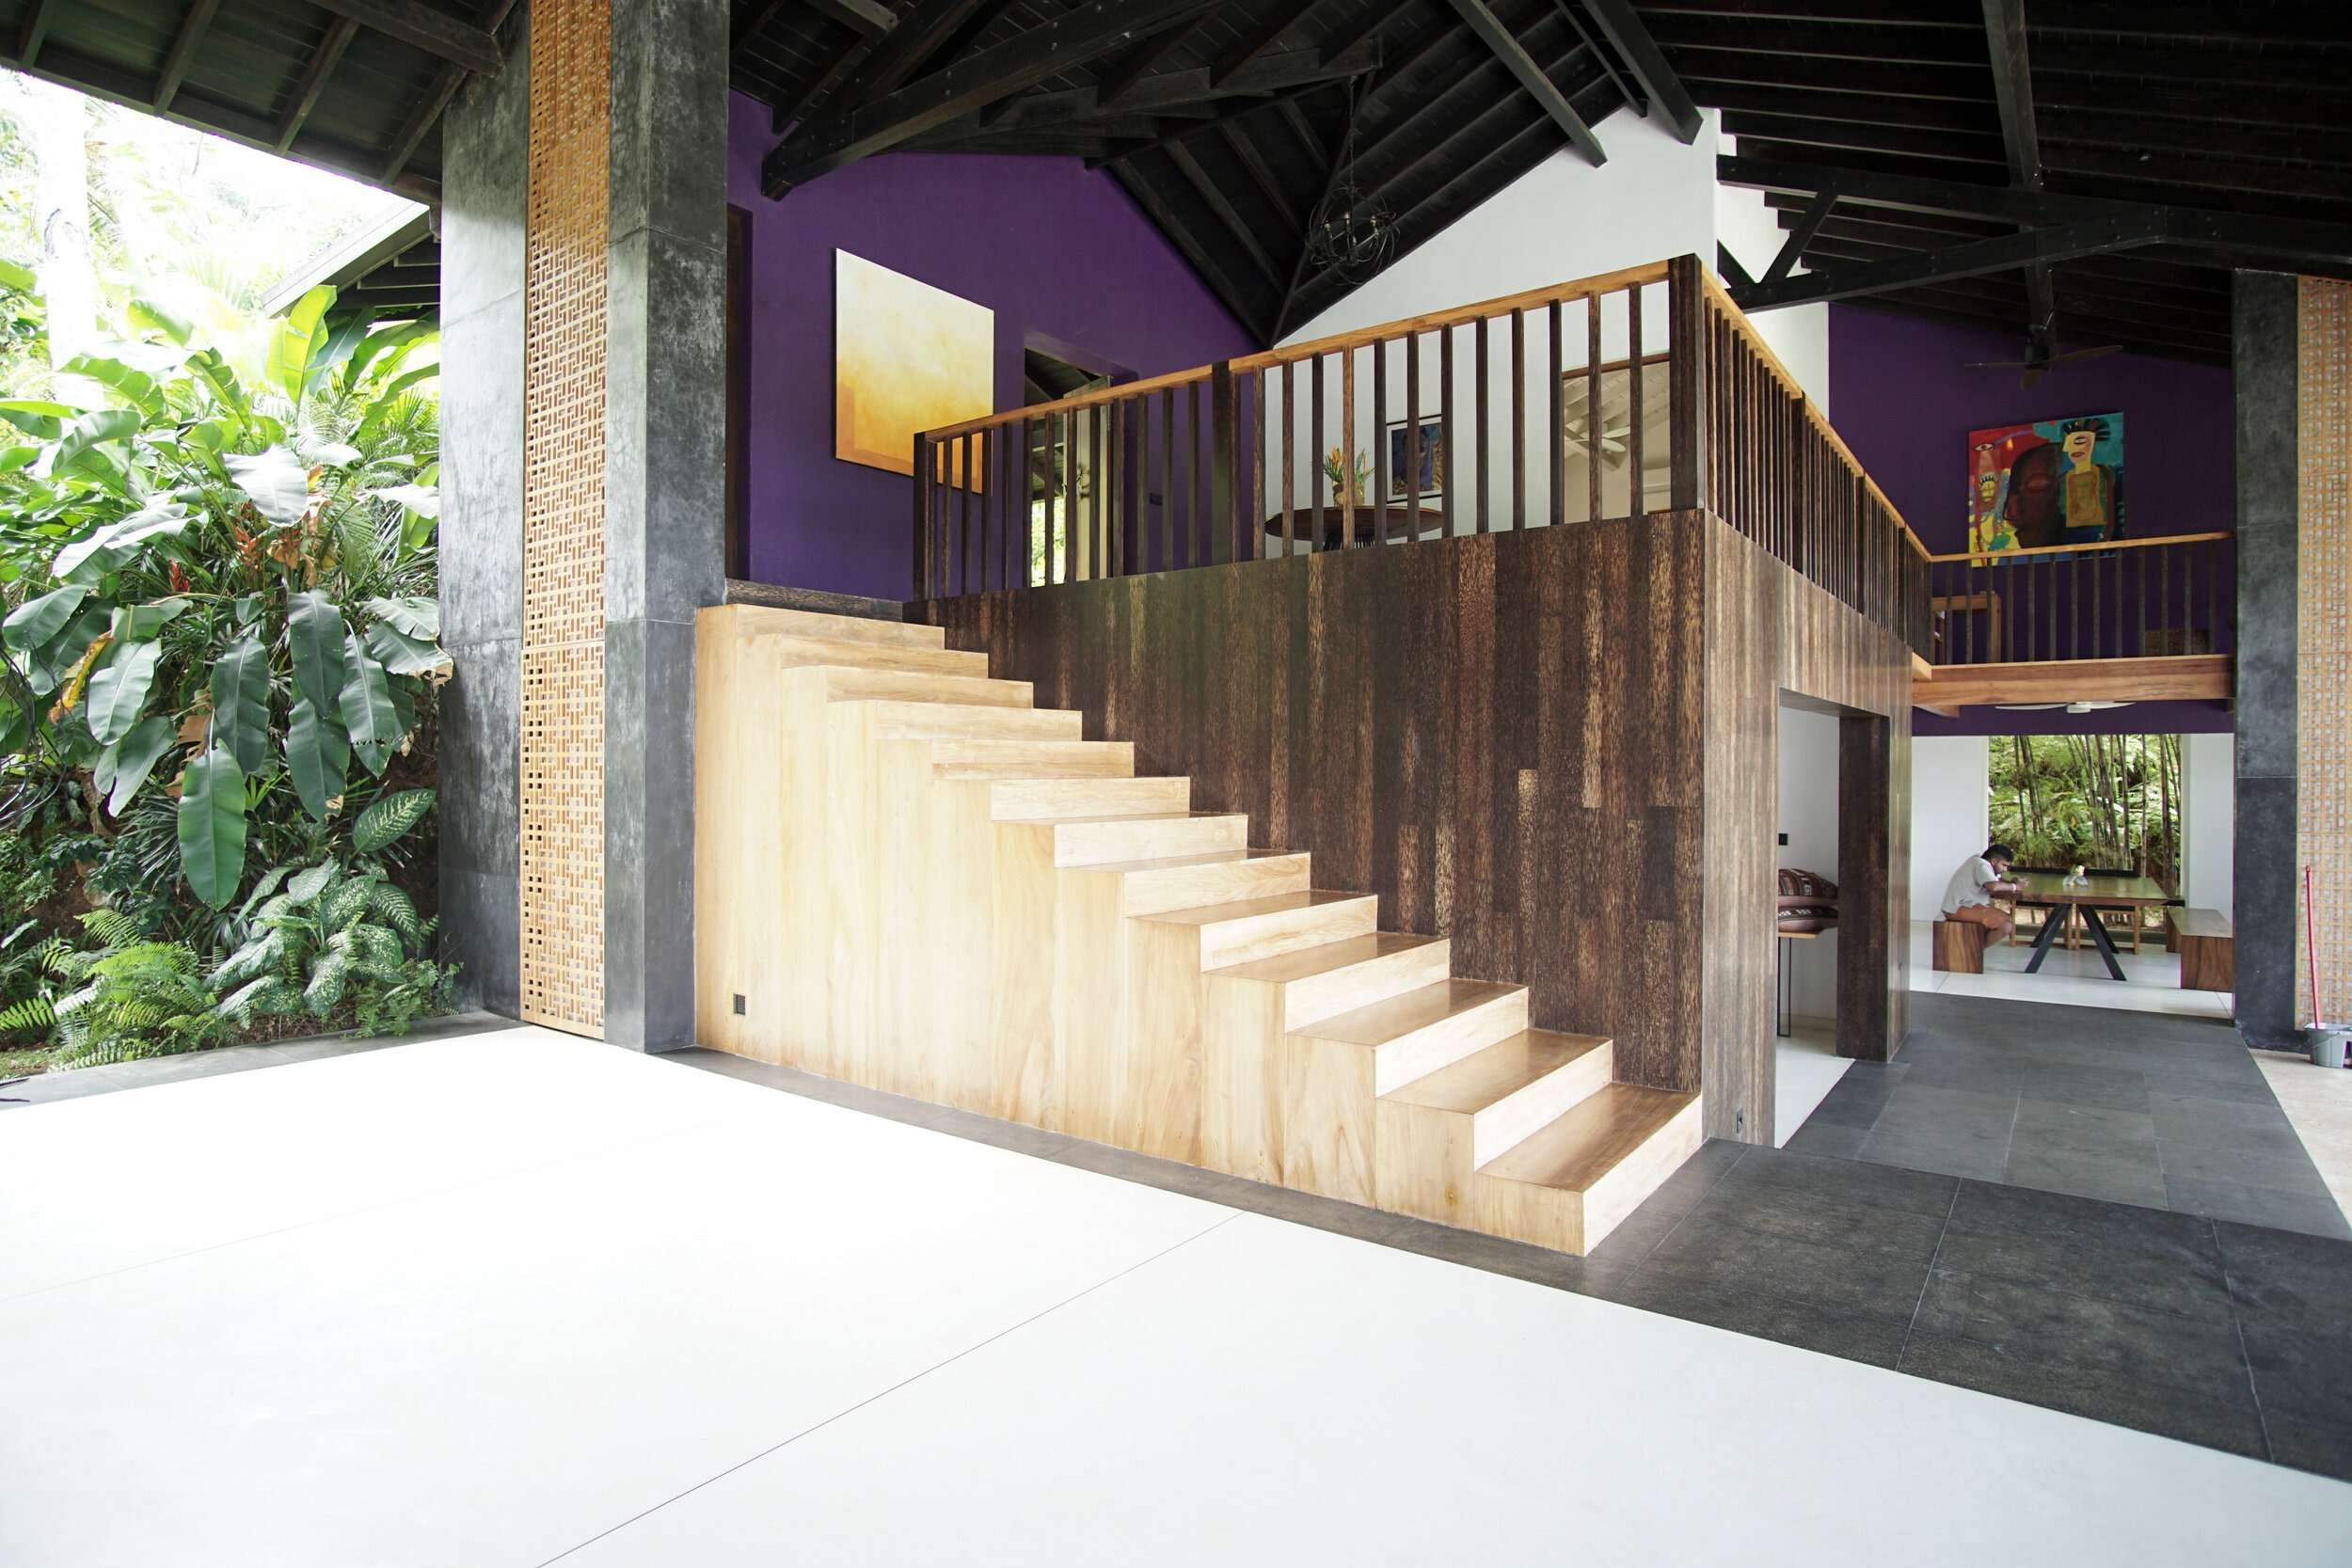 side view of wooden stairs leading up to a purple wall and entrance at Villa Wambatu